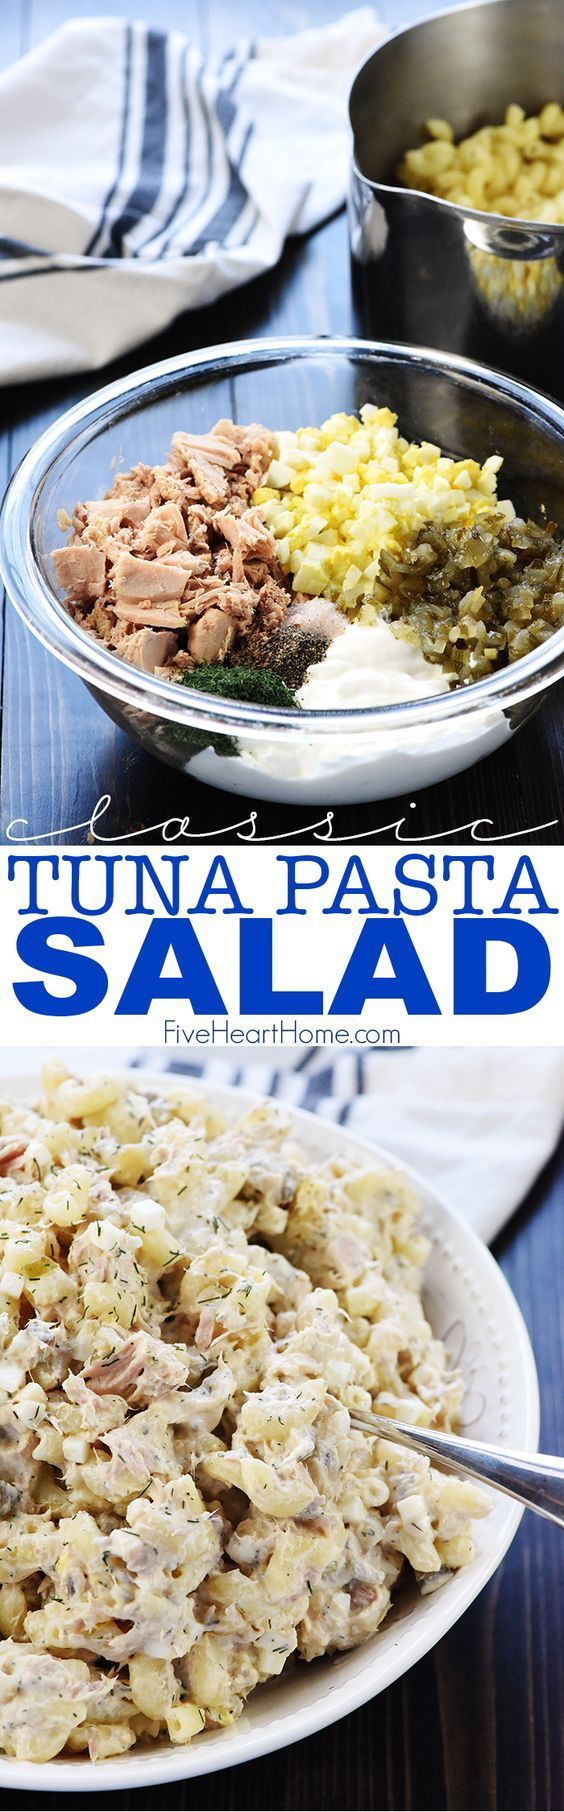 Classic Tuna Pasta Salad ~ with healthier whole wheat macaroni, hard-boiled eggs, two kind of pickles, and fresh dill in a lightened-up dressing of mayonnaise and Greek yogurt, this simple recipe is great for lunch or dinner! | FiveHeartHome.com #tuna #tunasalad #pasta #pastasalad #greekyogurt #eggs #pickles #recipe #fivehearthome